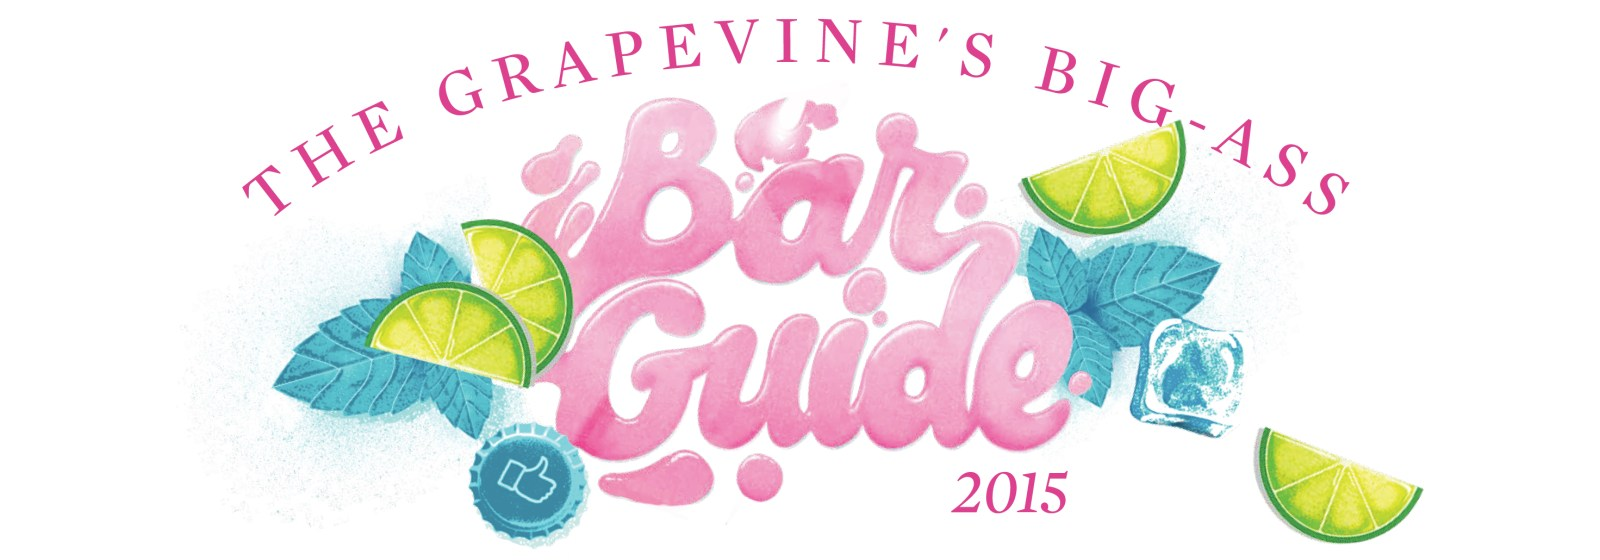 THE GRAPEVINE'S BIG-ASS BAR GUIDE 2015! - The Reykjavik